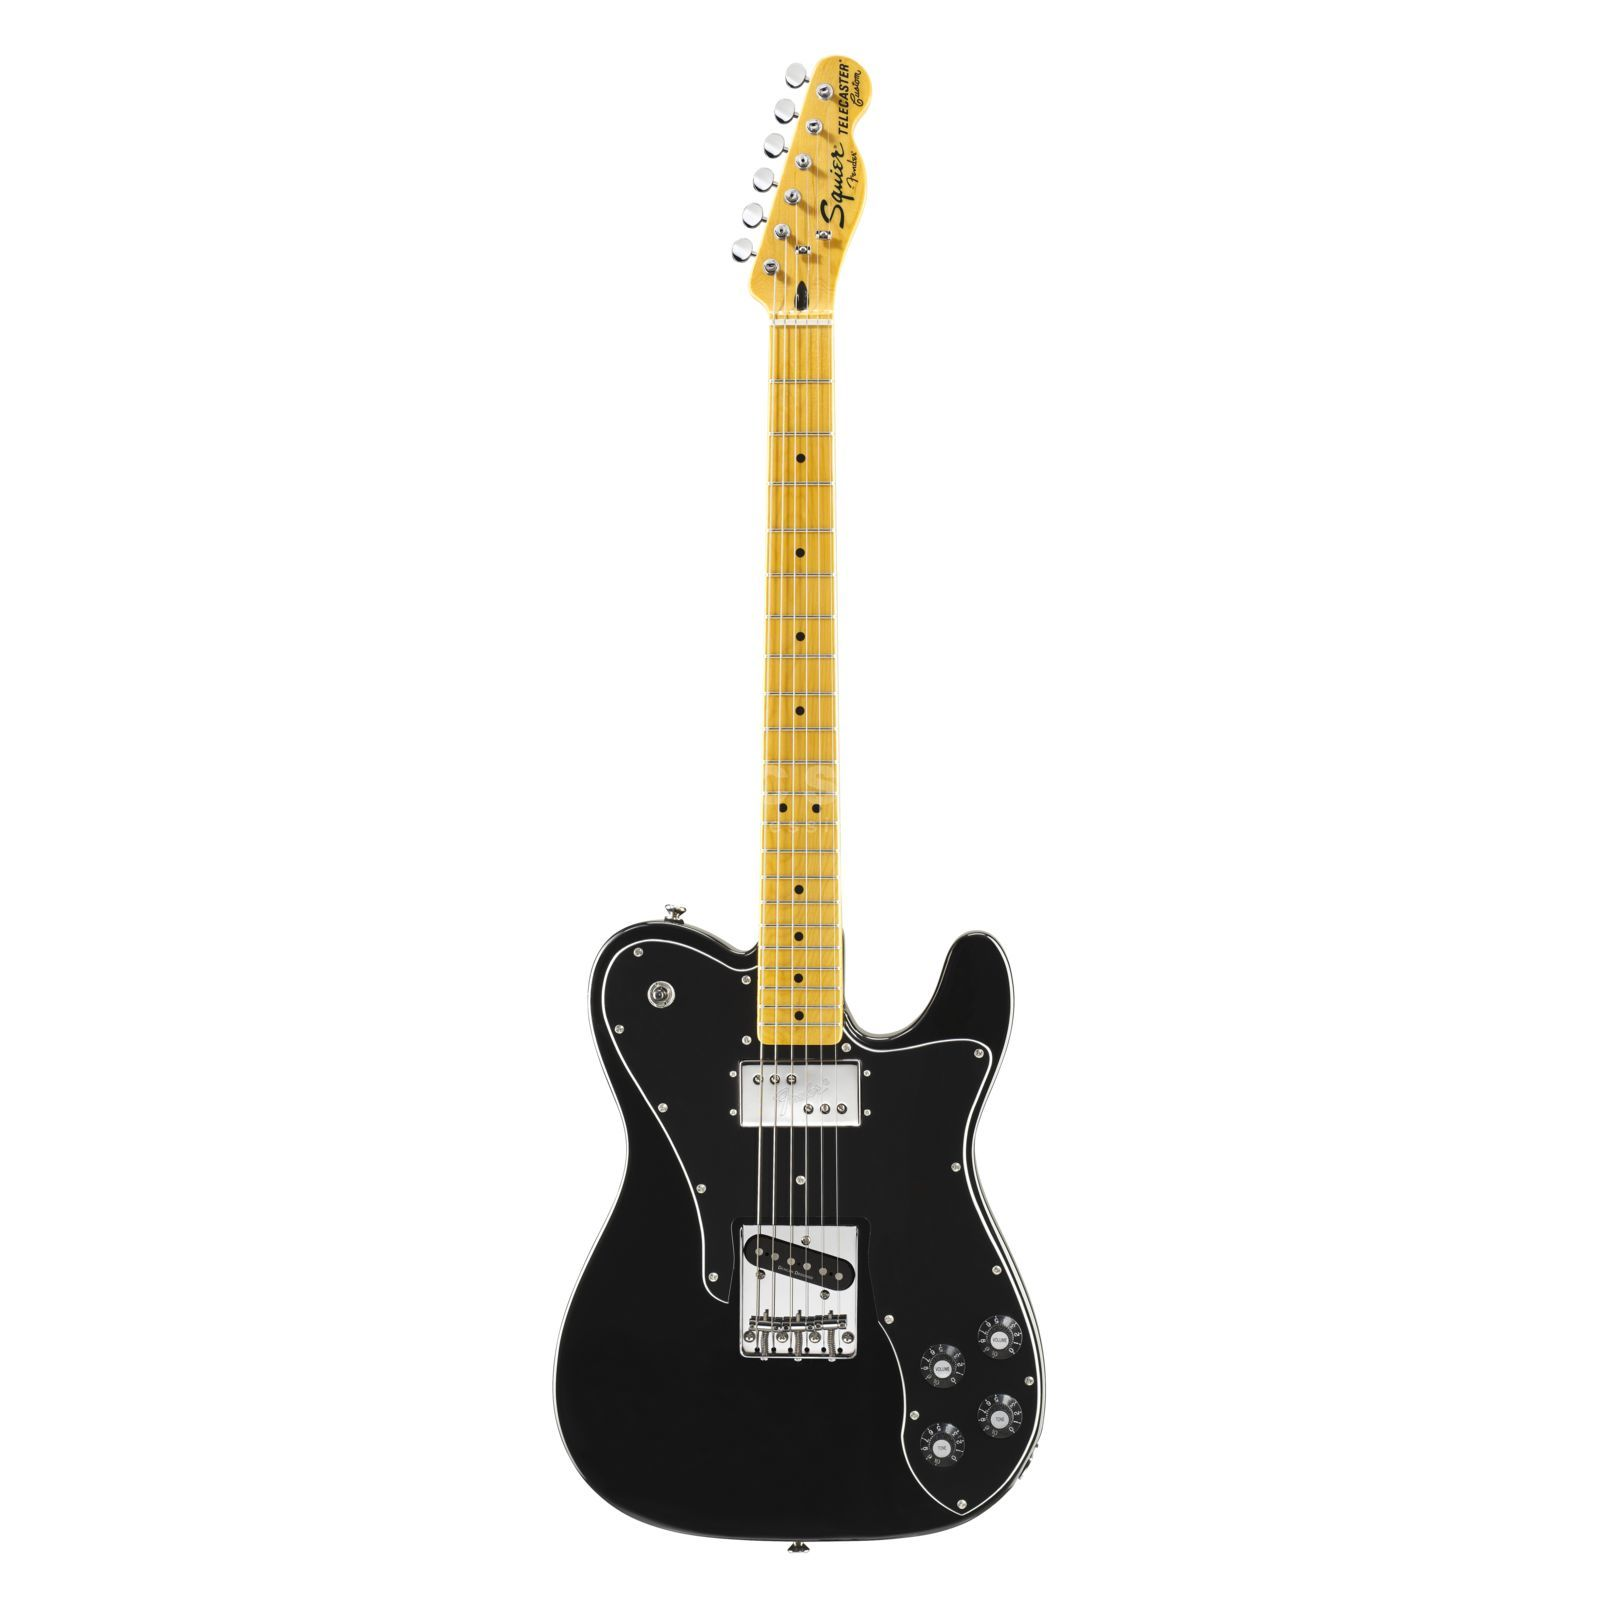 Fender Squier Vintage Modified Telecaster Custom MN Black Produktbild